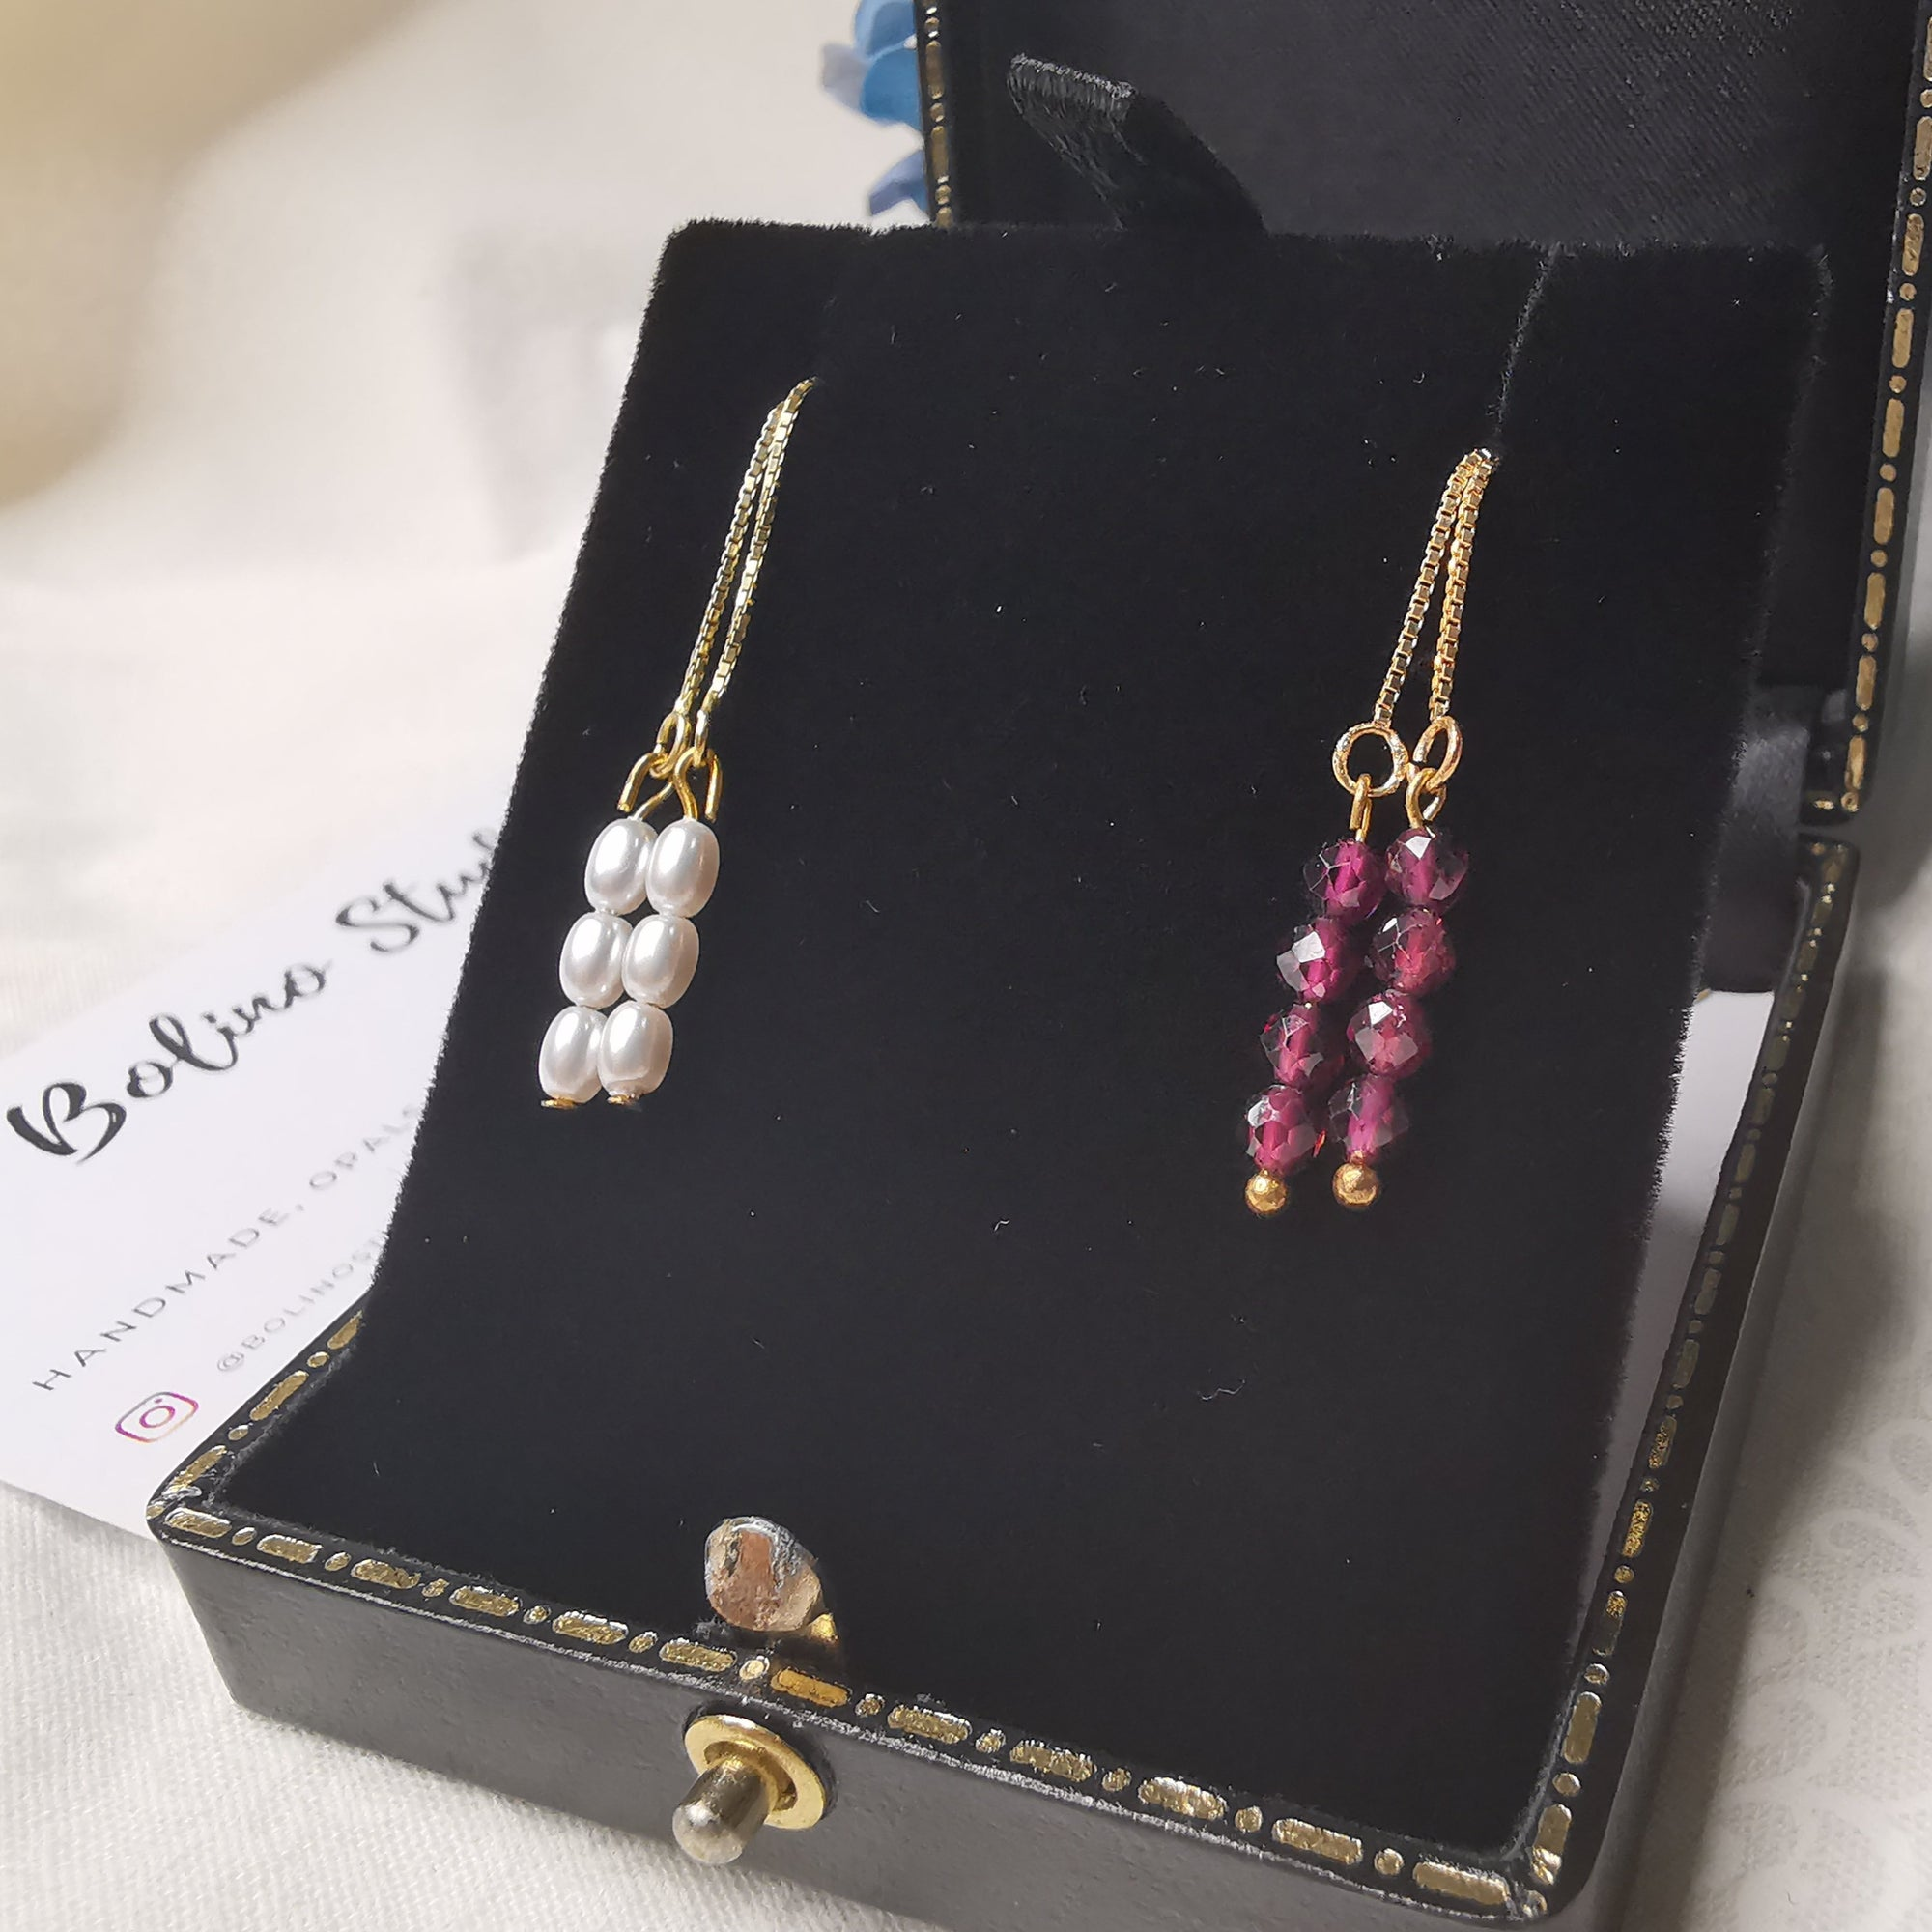 Minimalist Pearl Or Garnet Threader Earrings